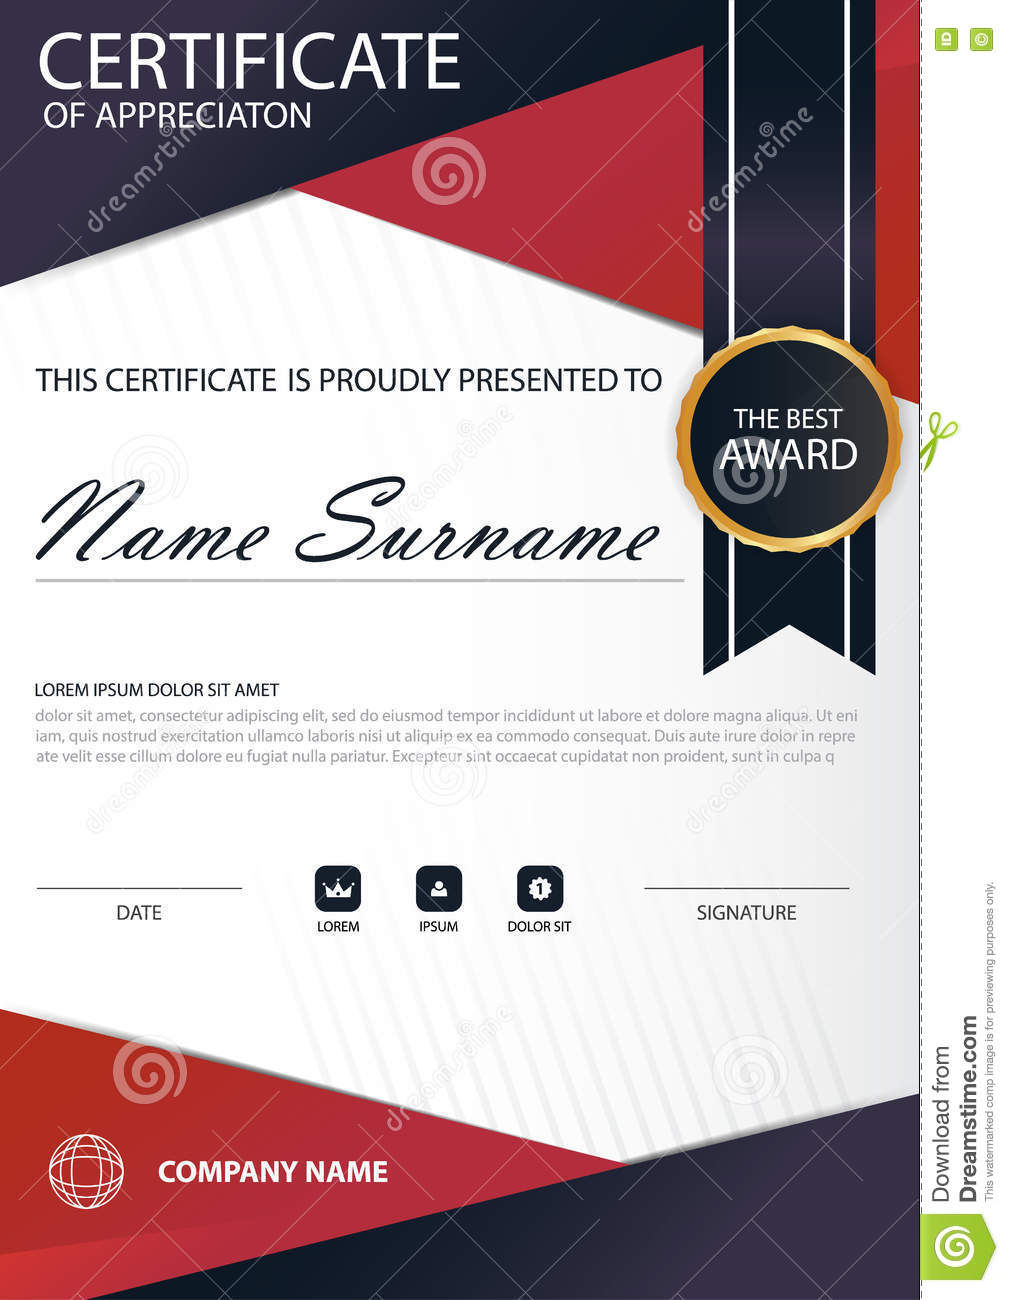 Red line elegance vertical certificate with vector illustration red line elegance vertical certificate with vector illustration white frame certificate template with clean and modern pattern yelopaper Gallery